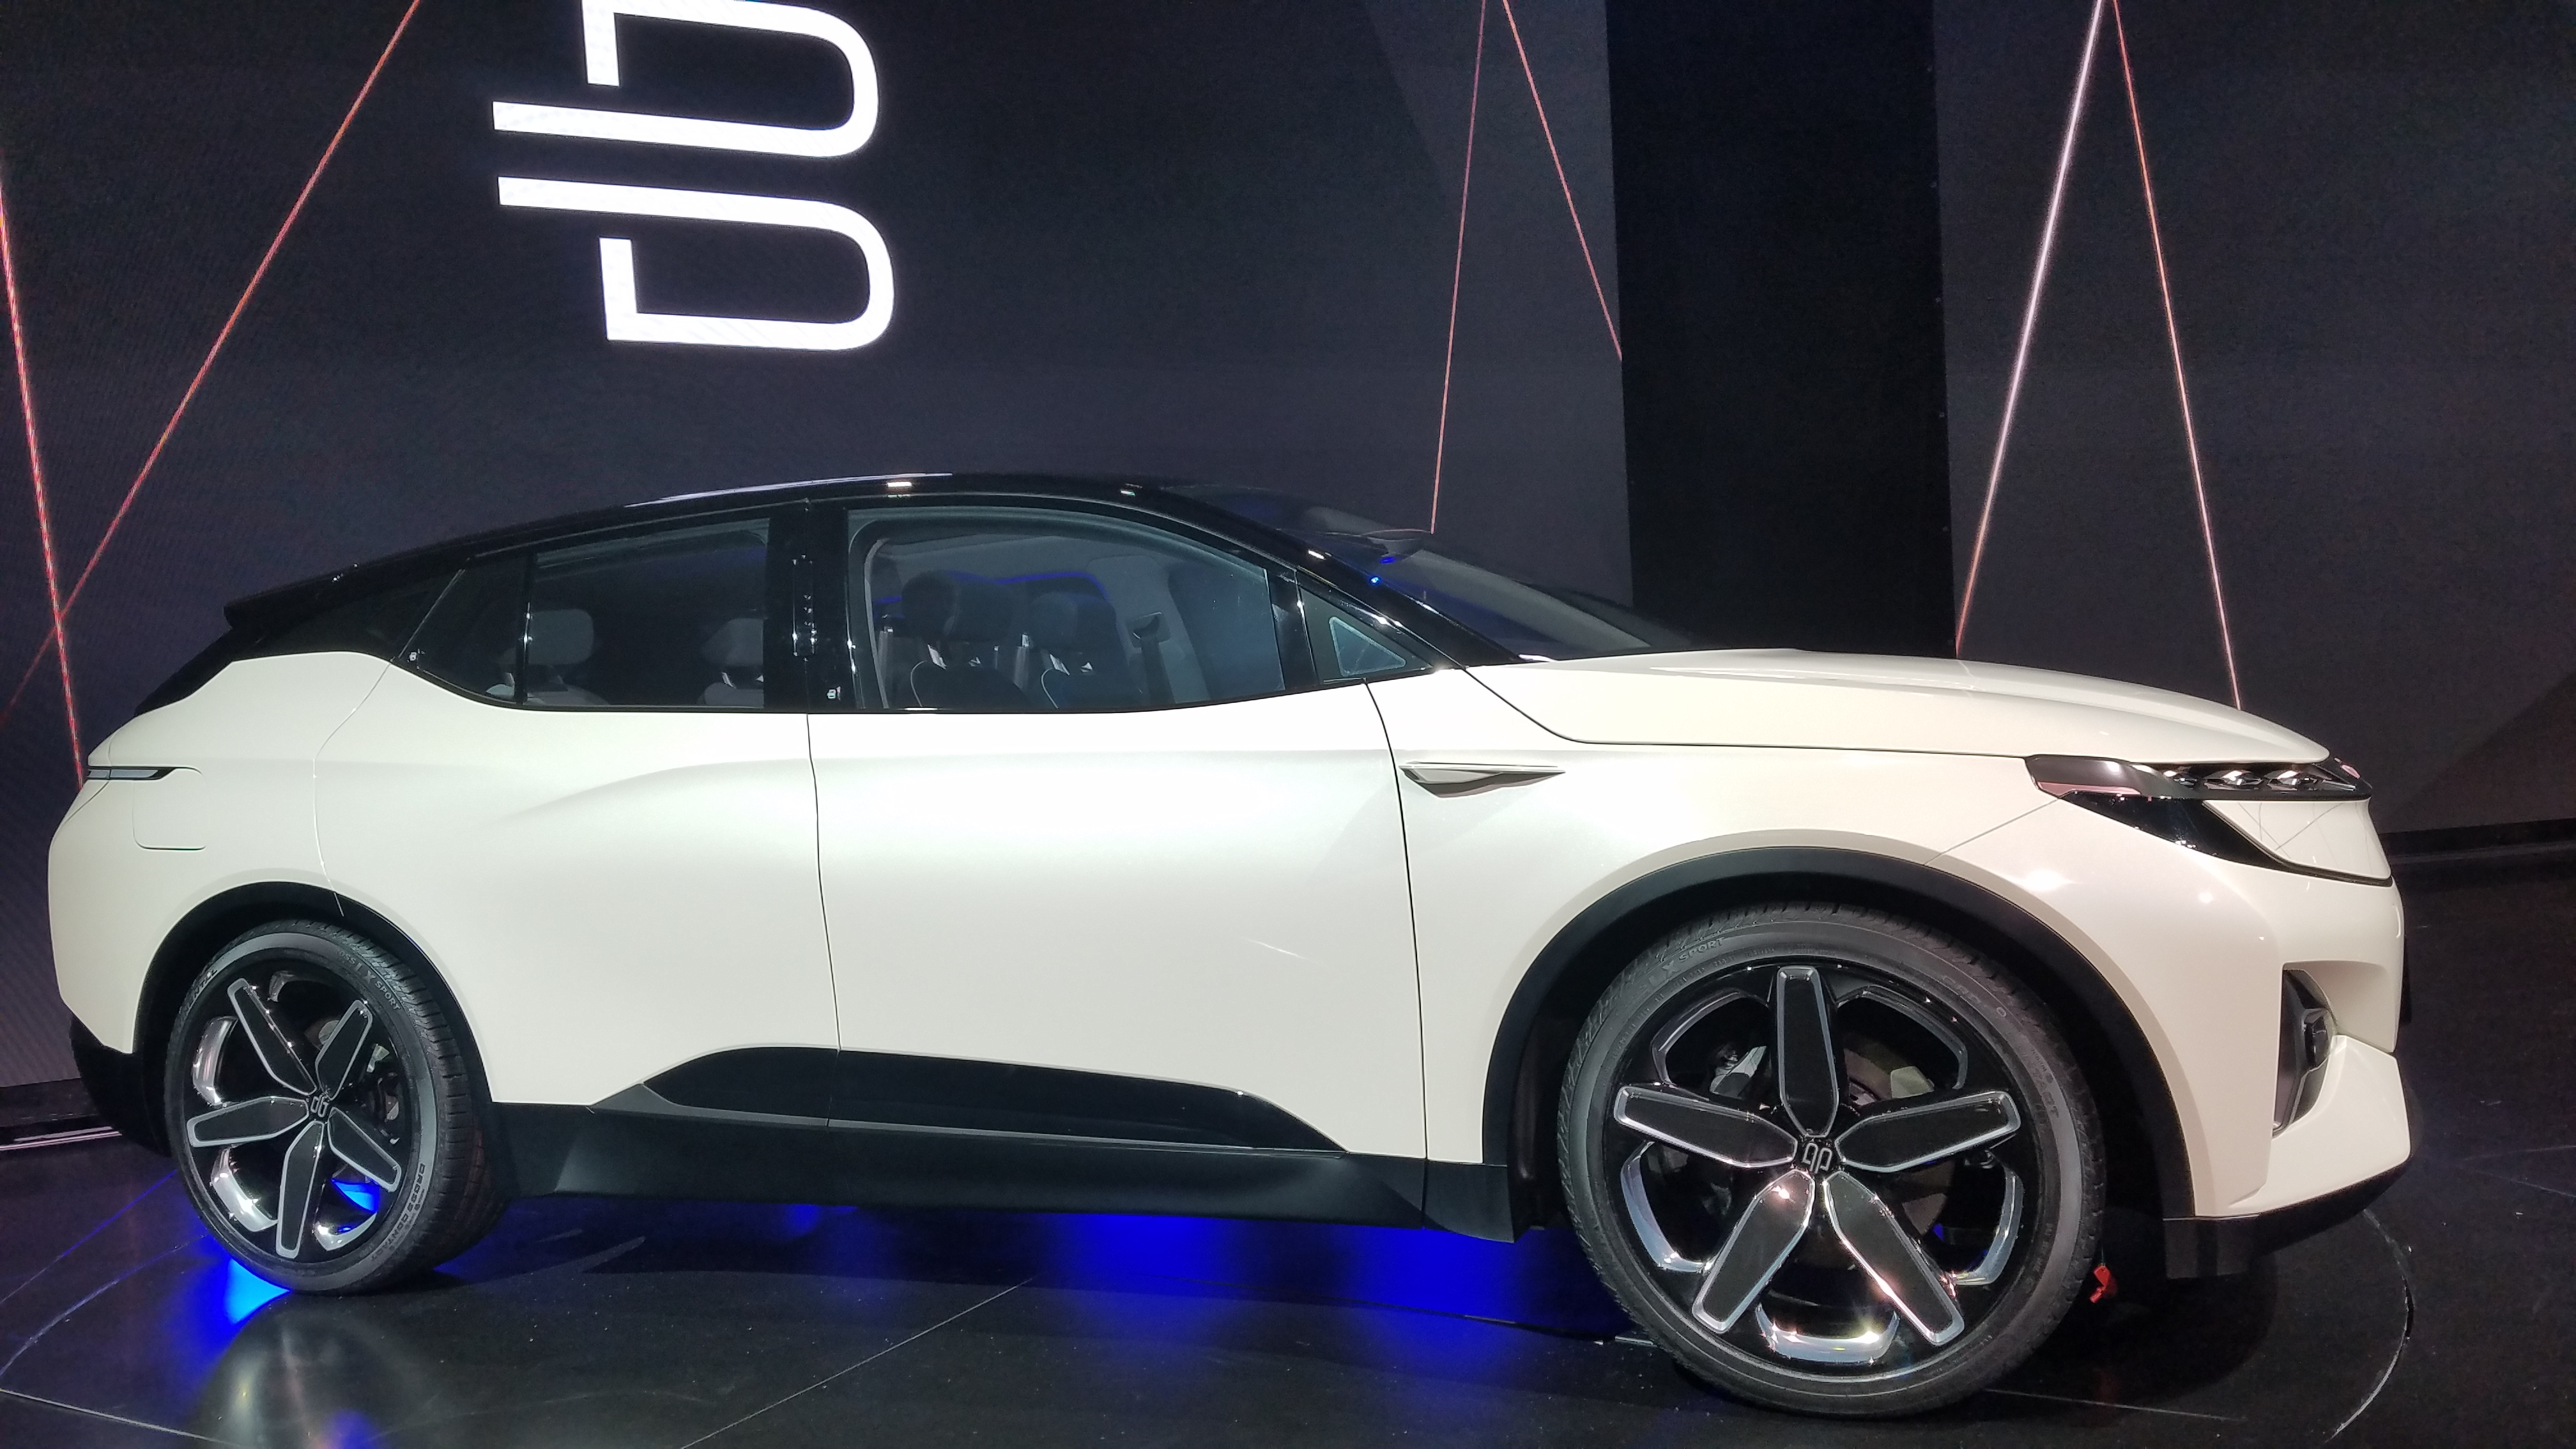 Byton, a Chinese-based electric vehicle company, unveiled its concept SUV on the opening media day at CES 2018.